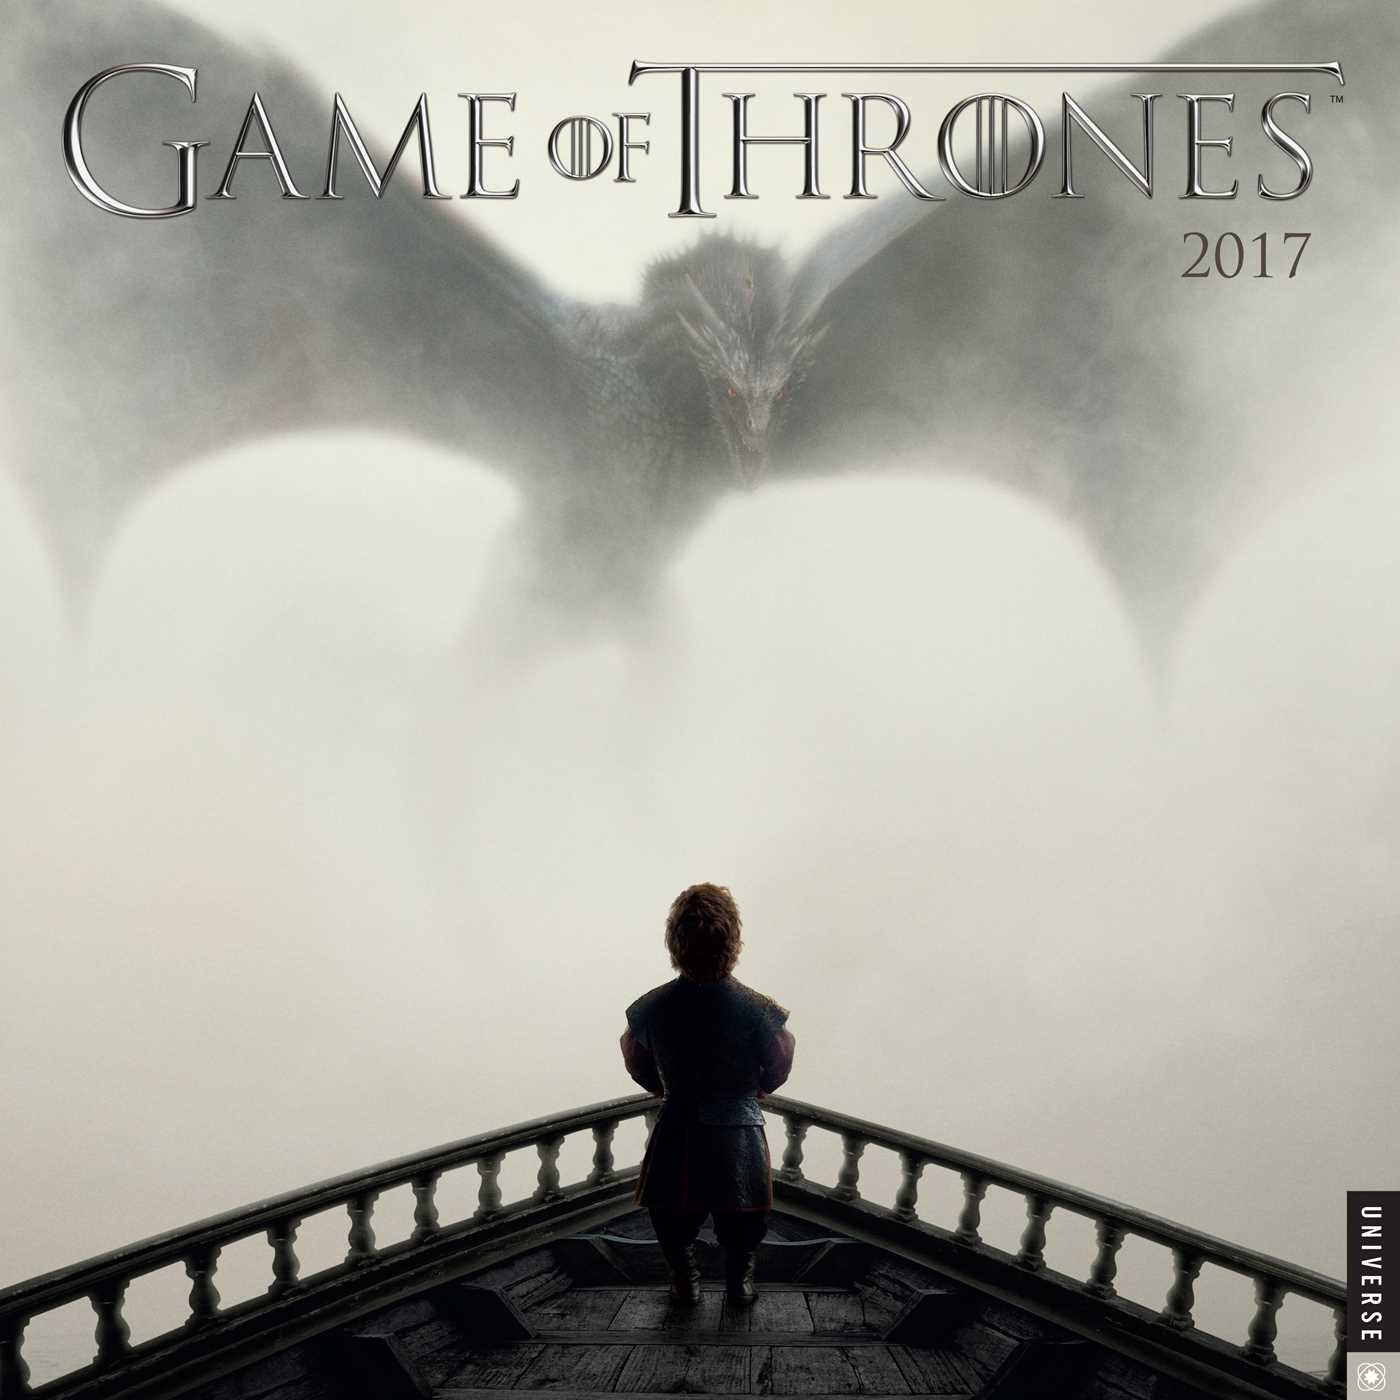 game of thrones 2017 wall calendar hbo 9780789331724 amazon com books